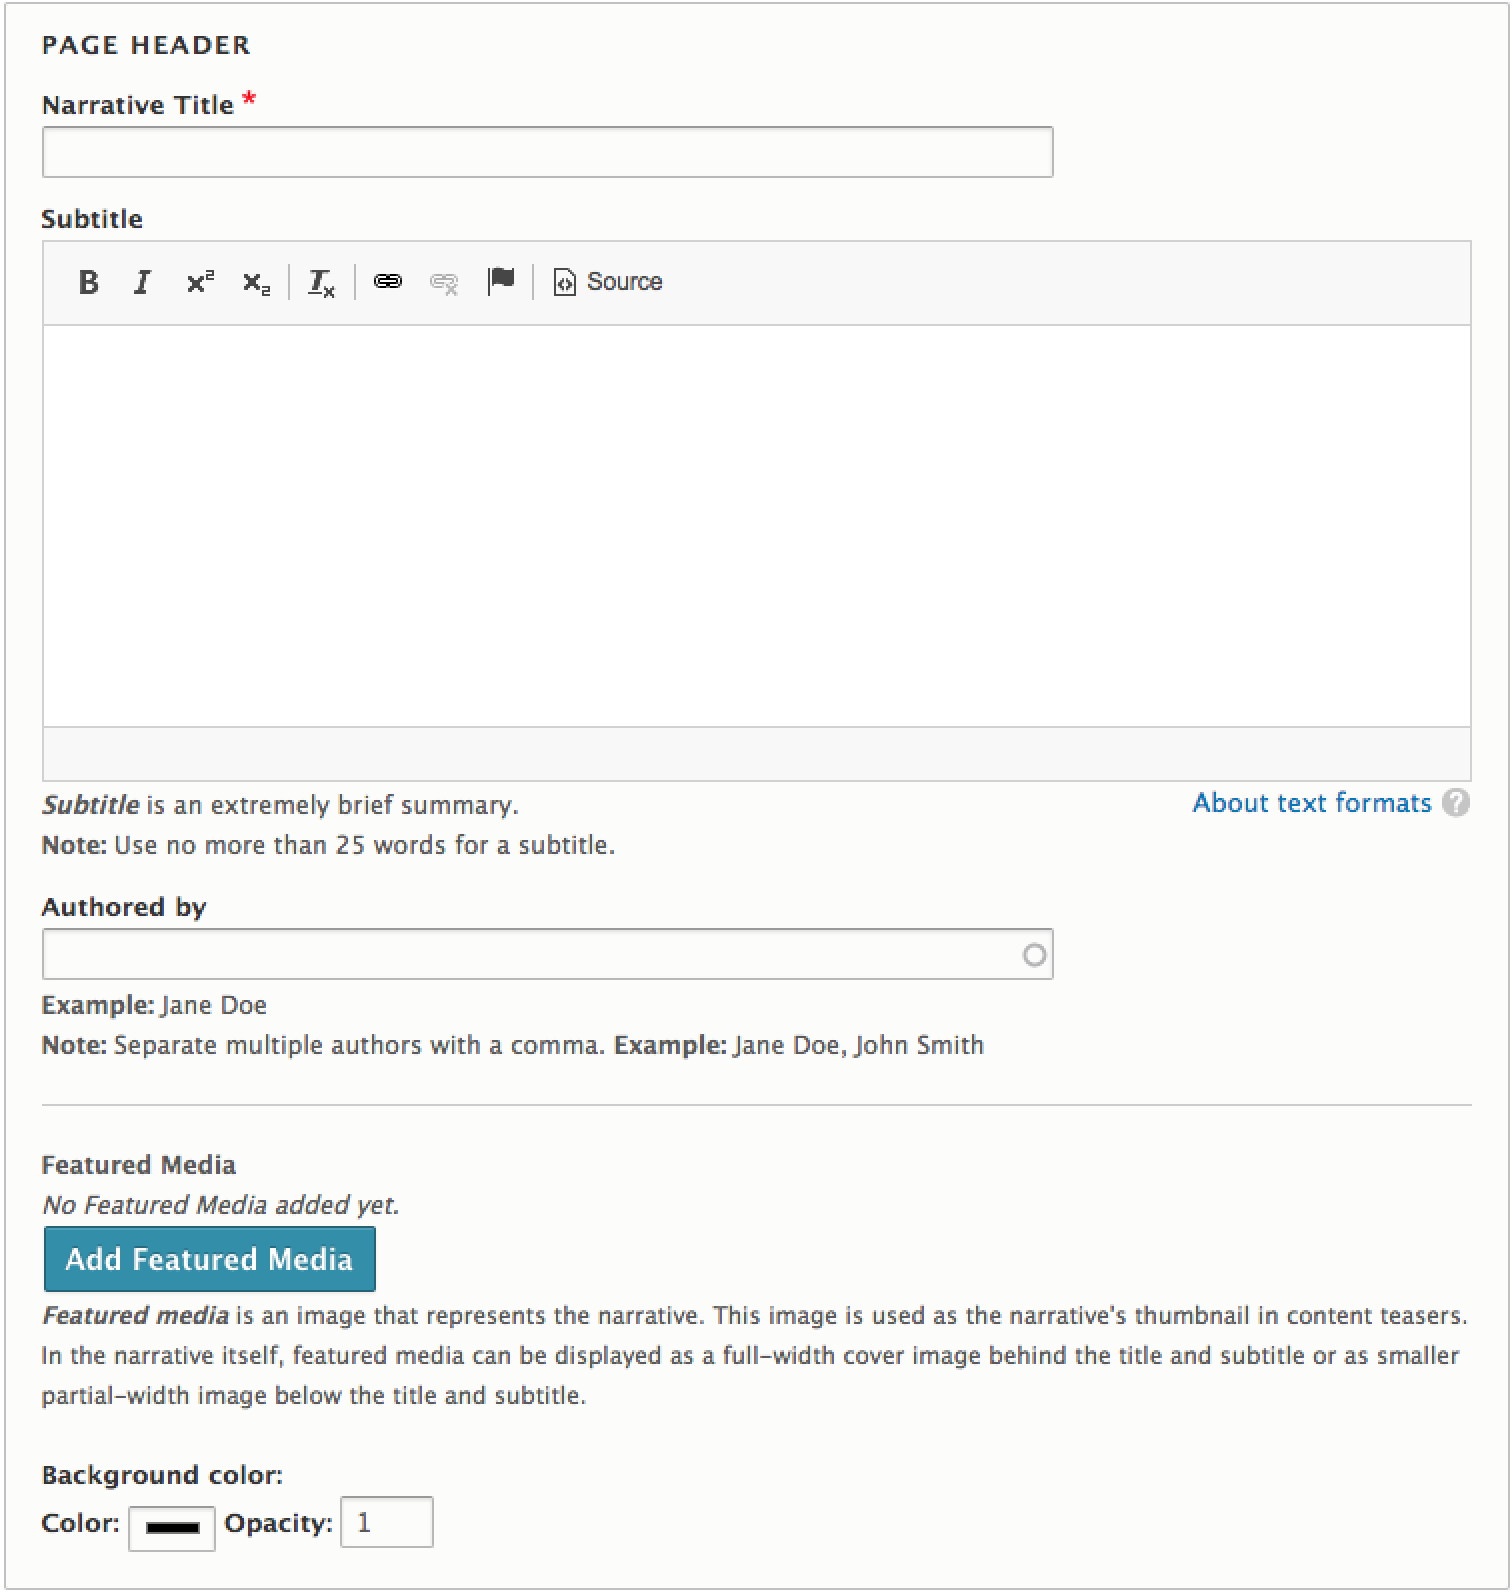 A screenshot of the Page Header section of the narrative content type, showing fields such as Narrative title, byline, etc.